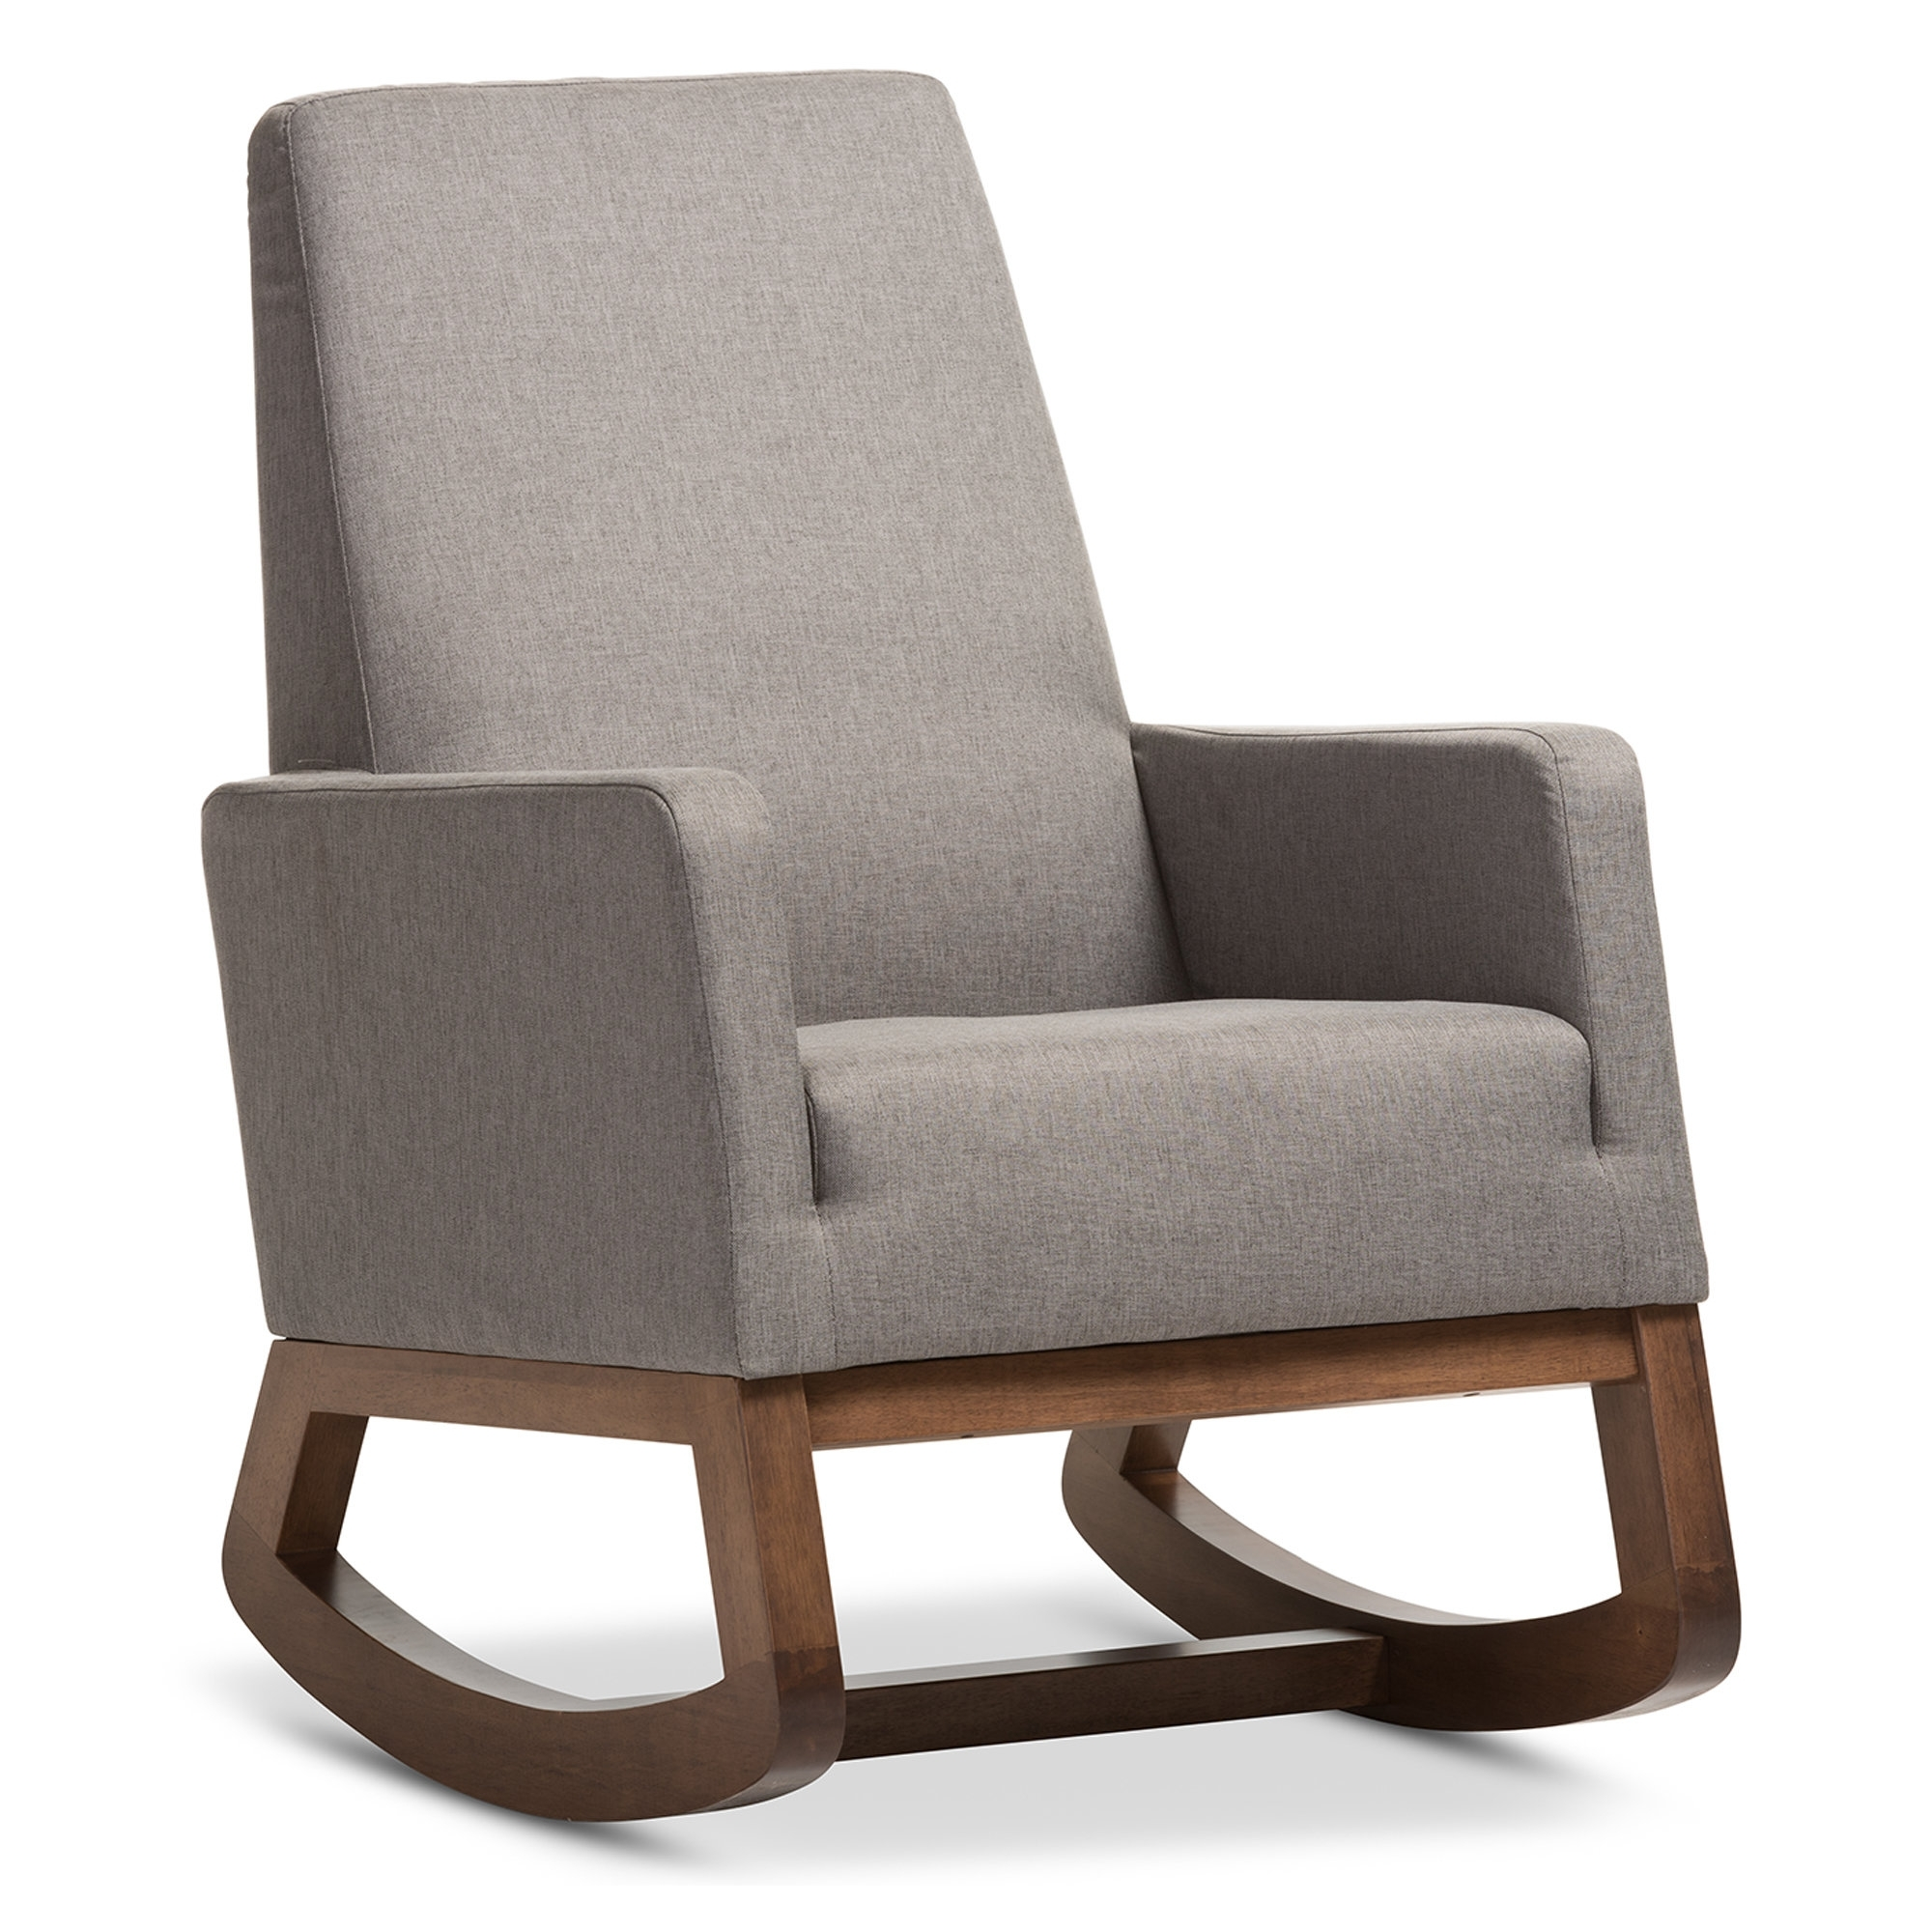 Preferred Rocking Chairs At Wayfair In Viv + Rae Nola Rocking Chair & Reviews (View 5 of 15)